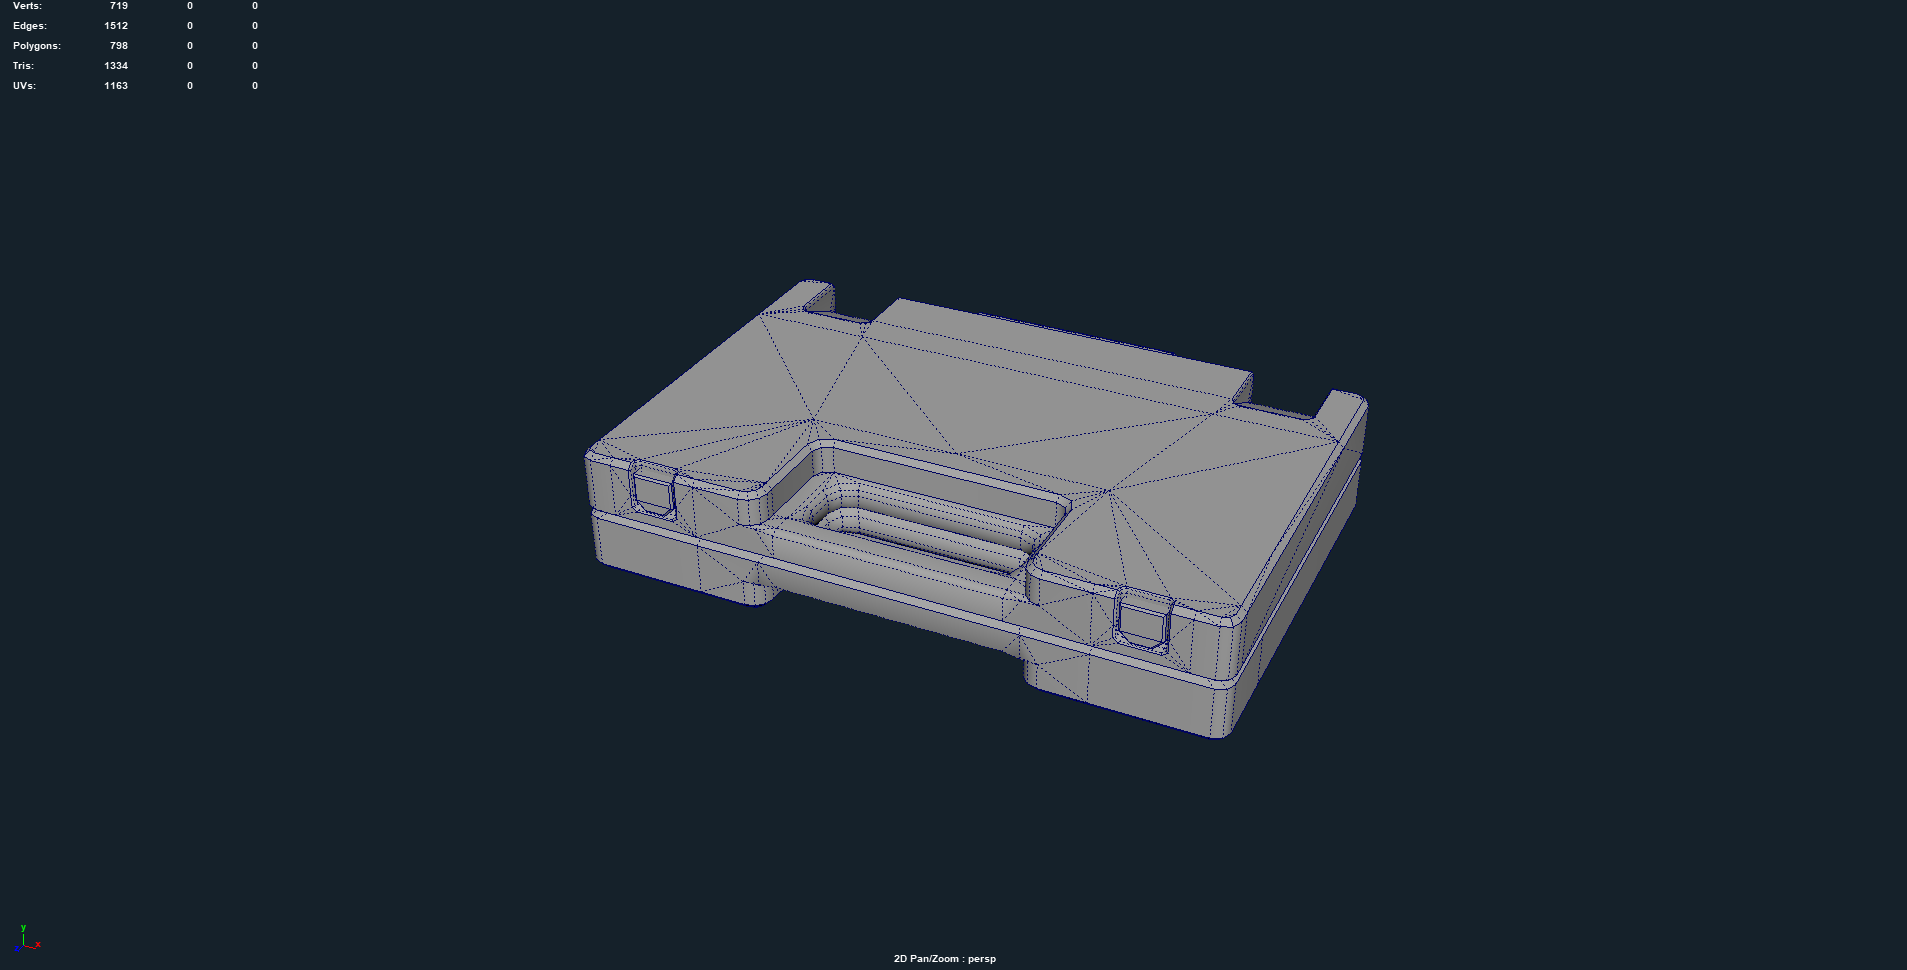 Closed model, without interior at 1,334 triangles.